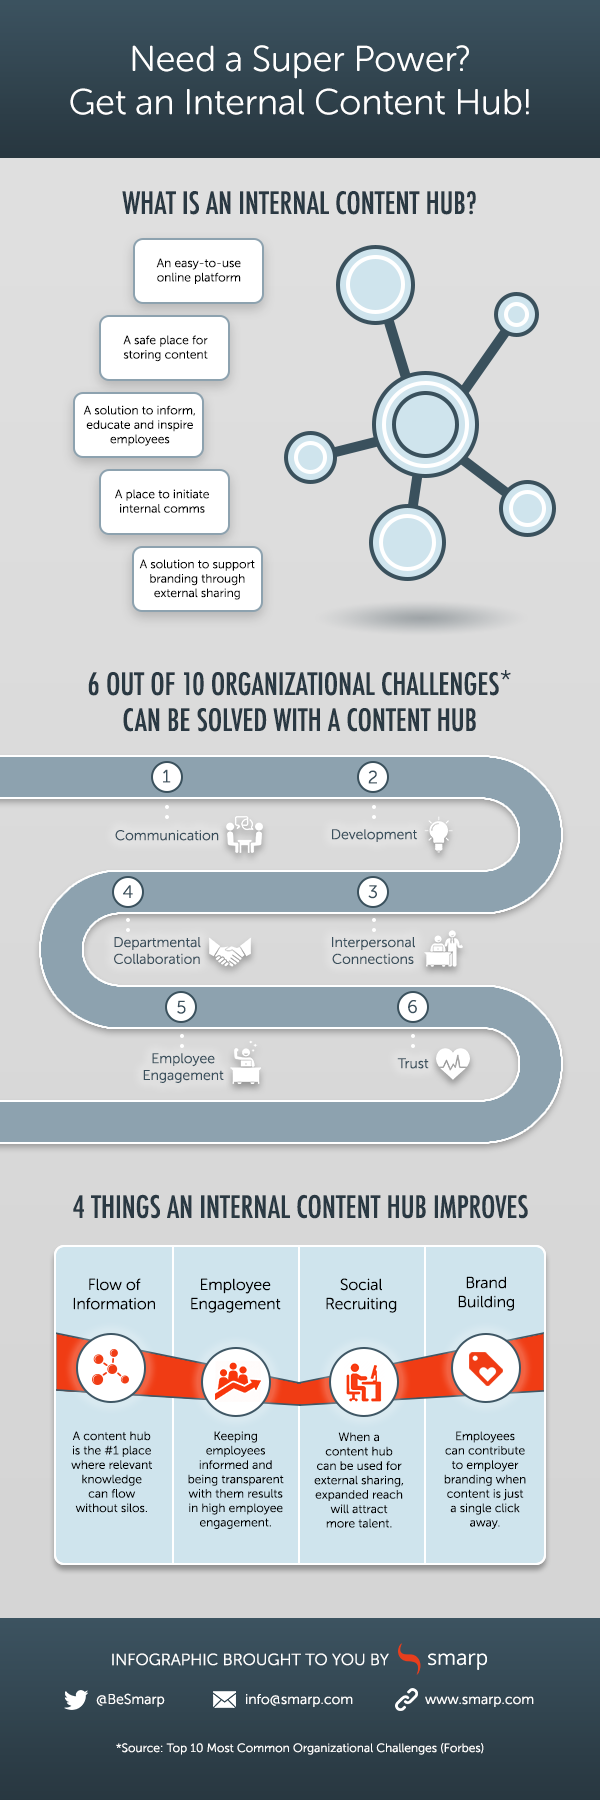 Use an internal content hub as your super power - infographic by Smarp